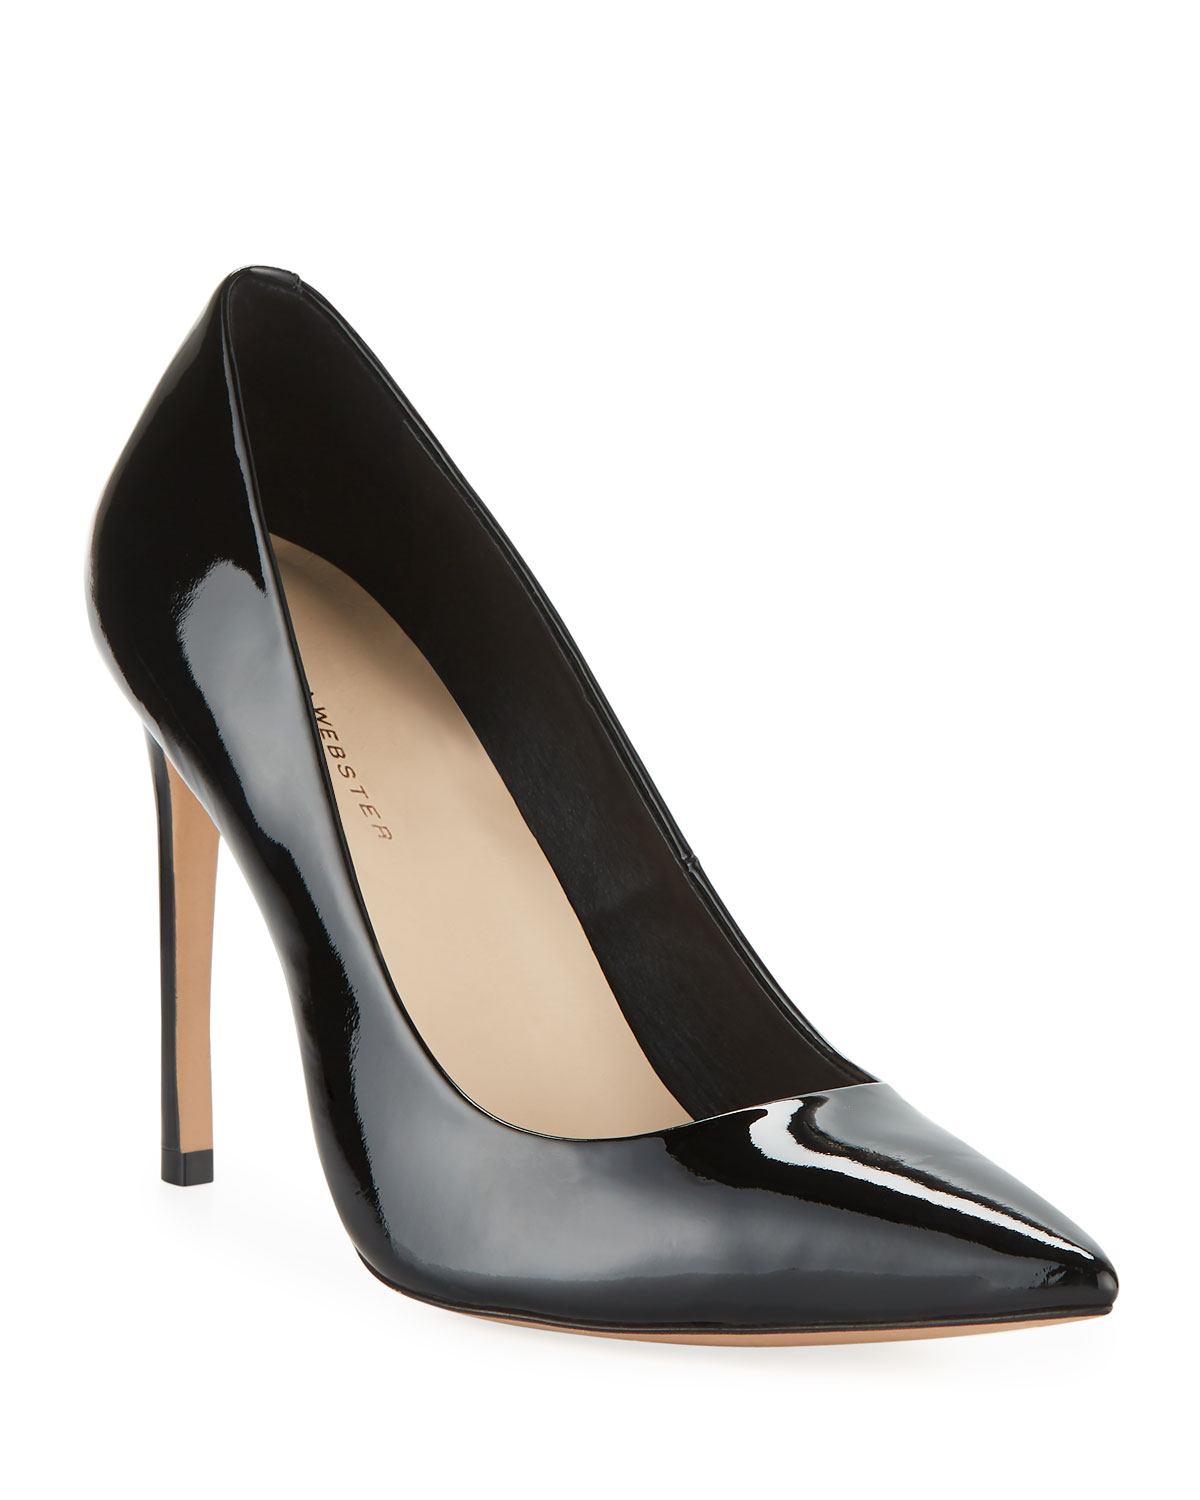 Rio High-Heel Patent Leather Pumps